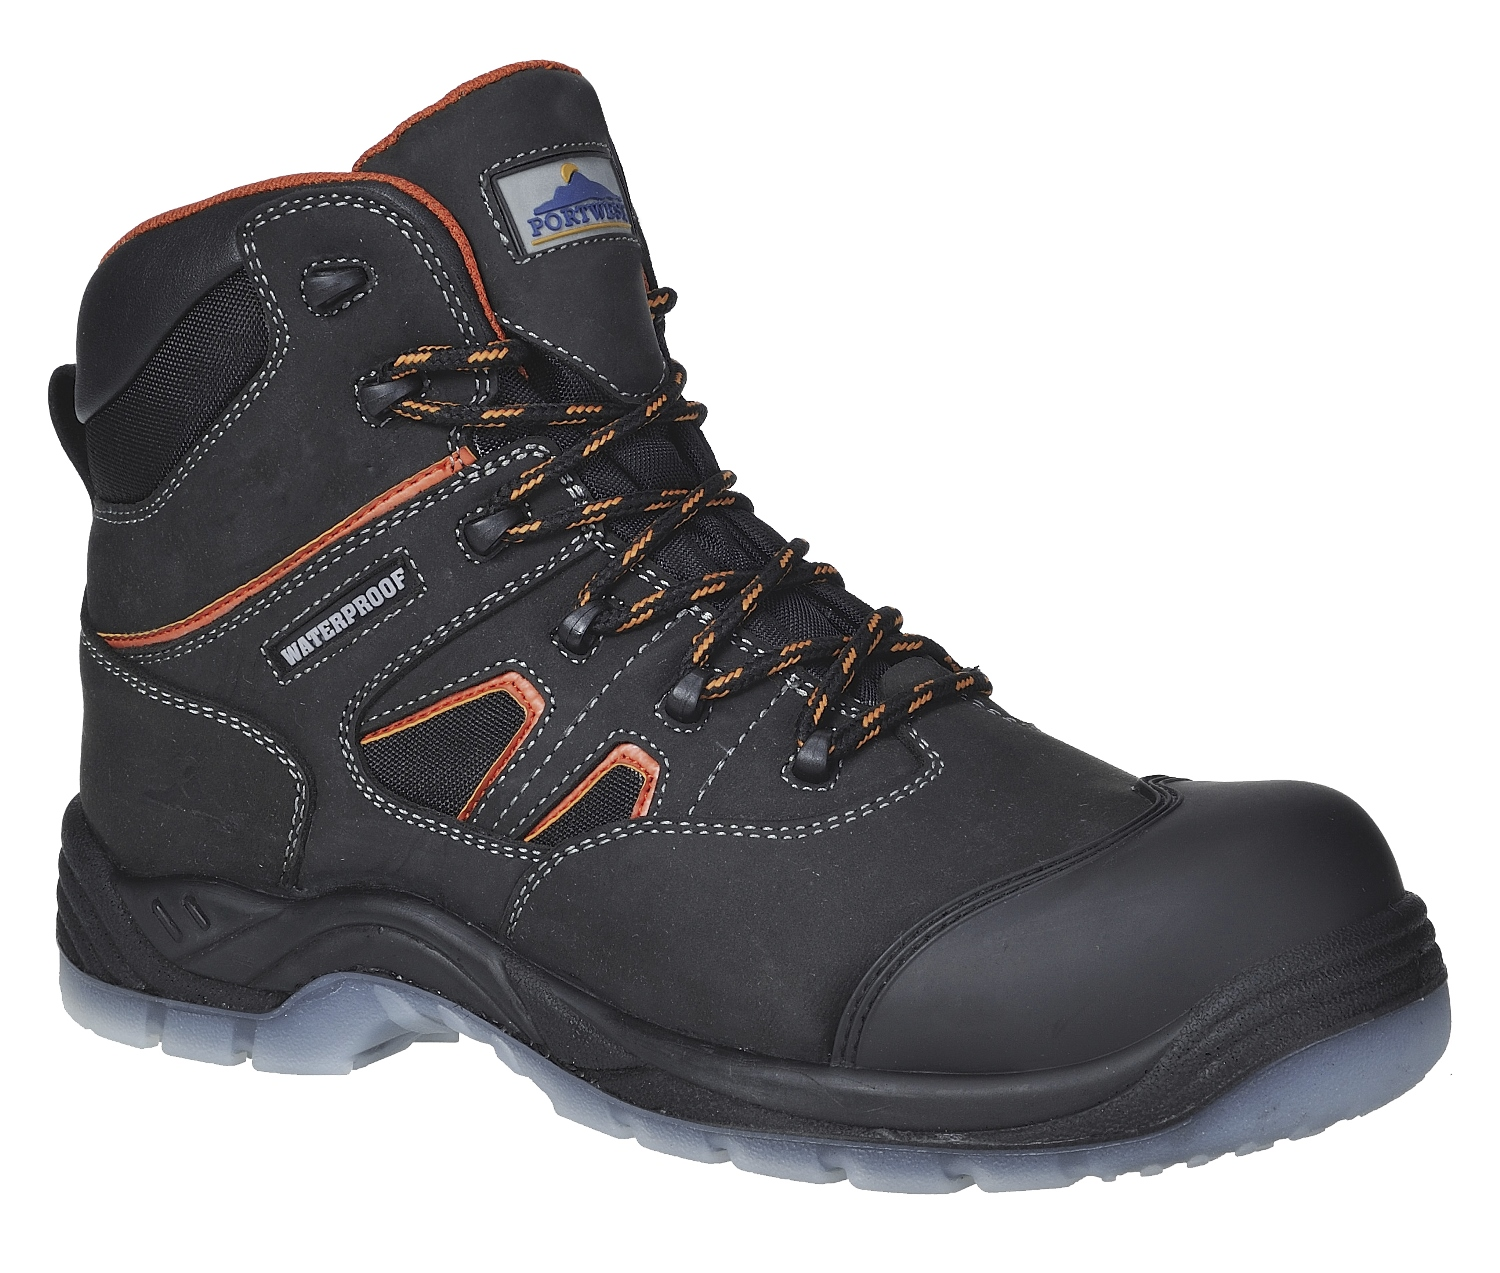 portwest fc57 mens safety boots metal free toe cap